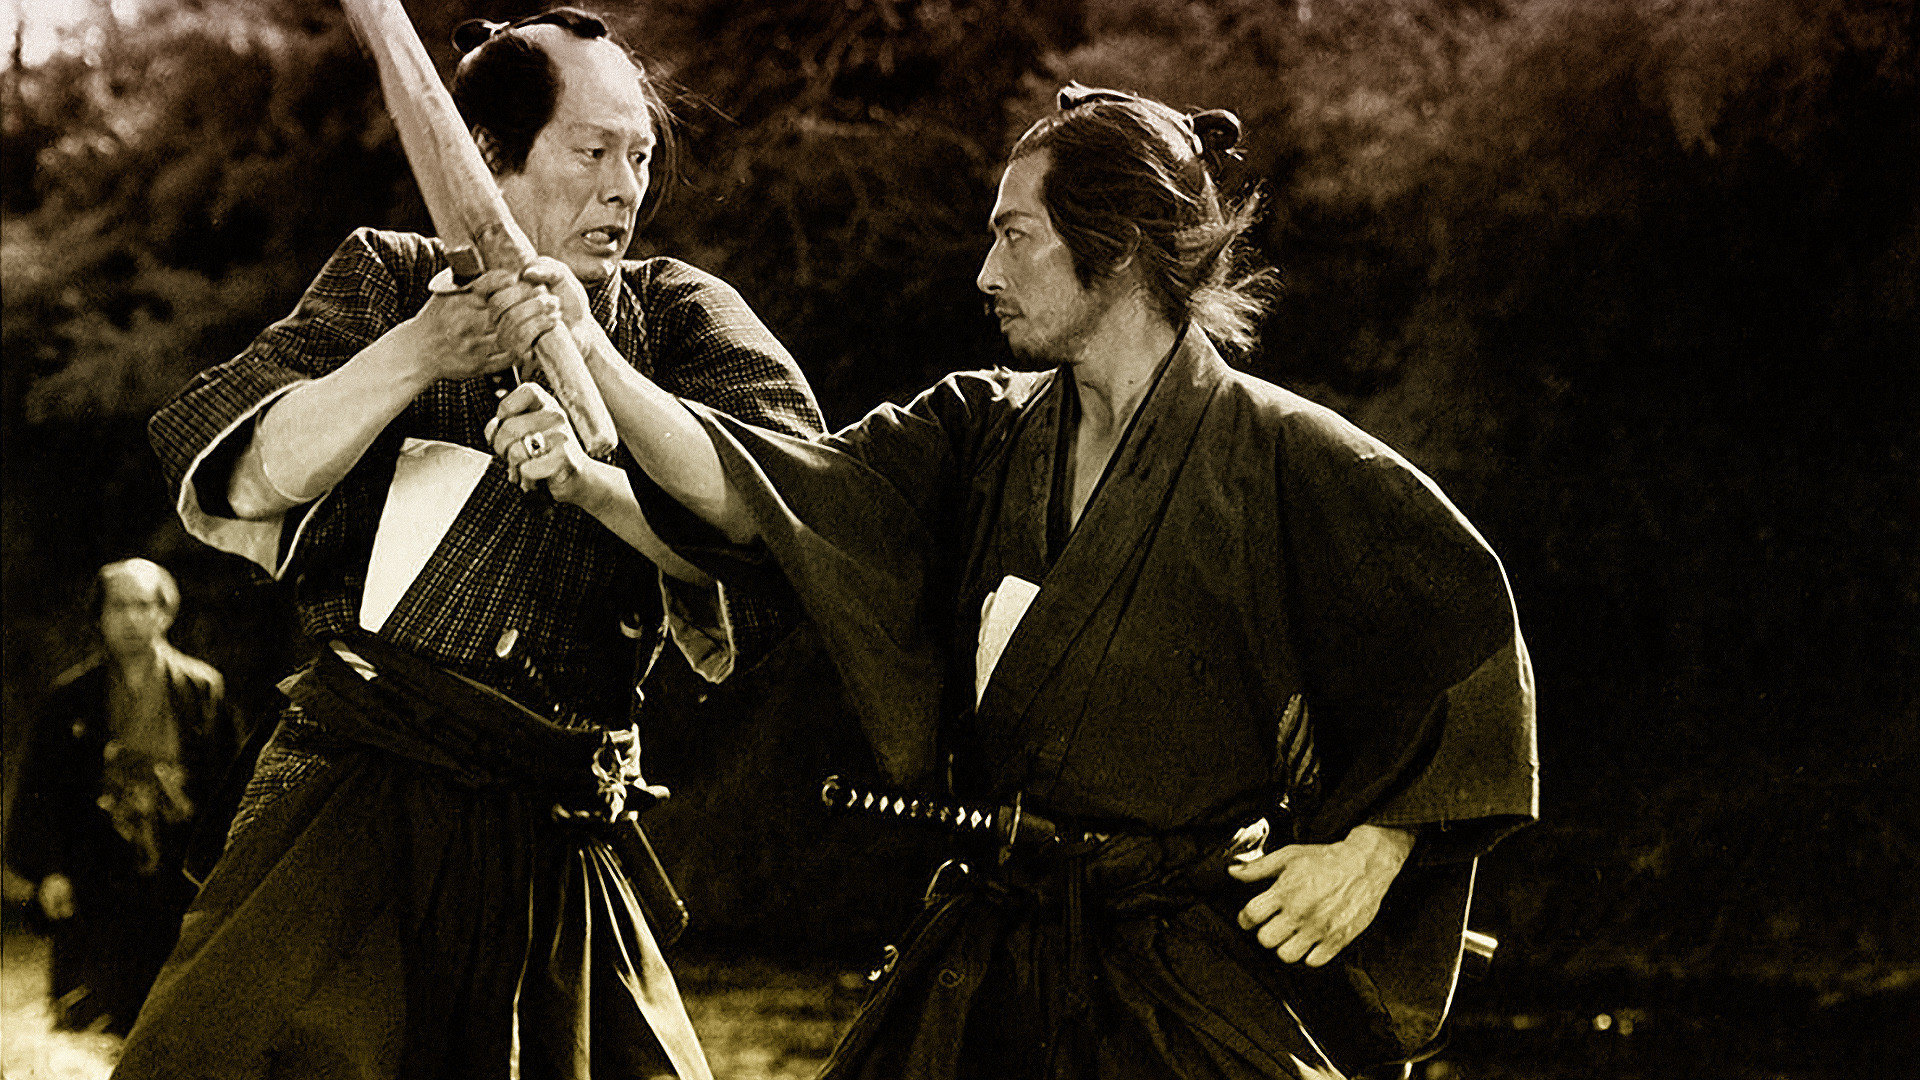 Seibei proves he is a highly skilled samurai-in-waiting, when he defeats Tomoe's former husband in a duel with only a wooden sword early in the film